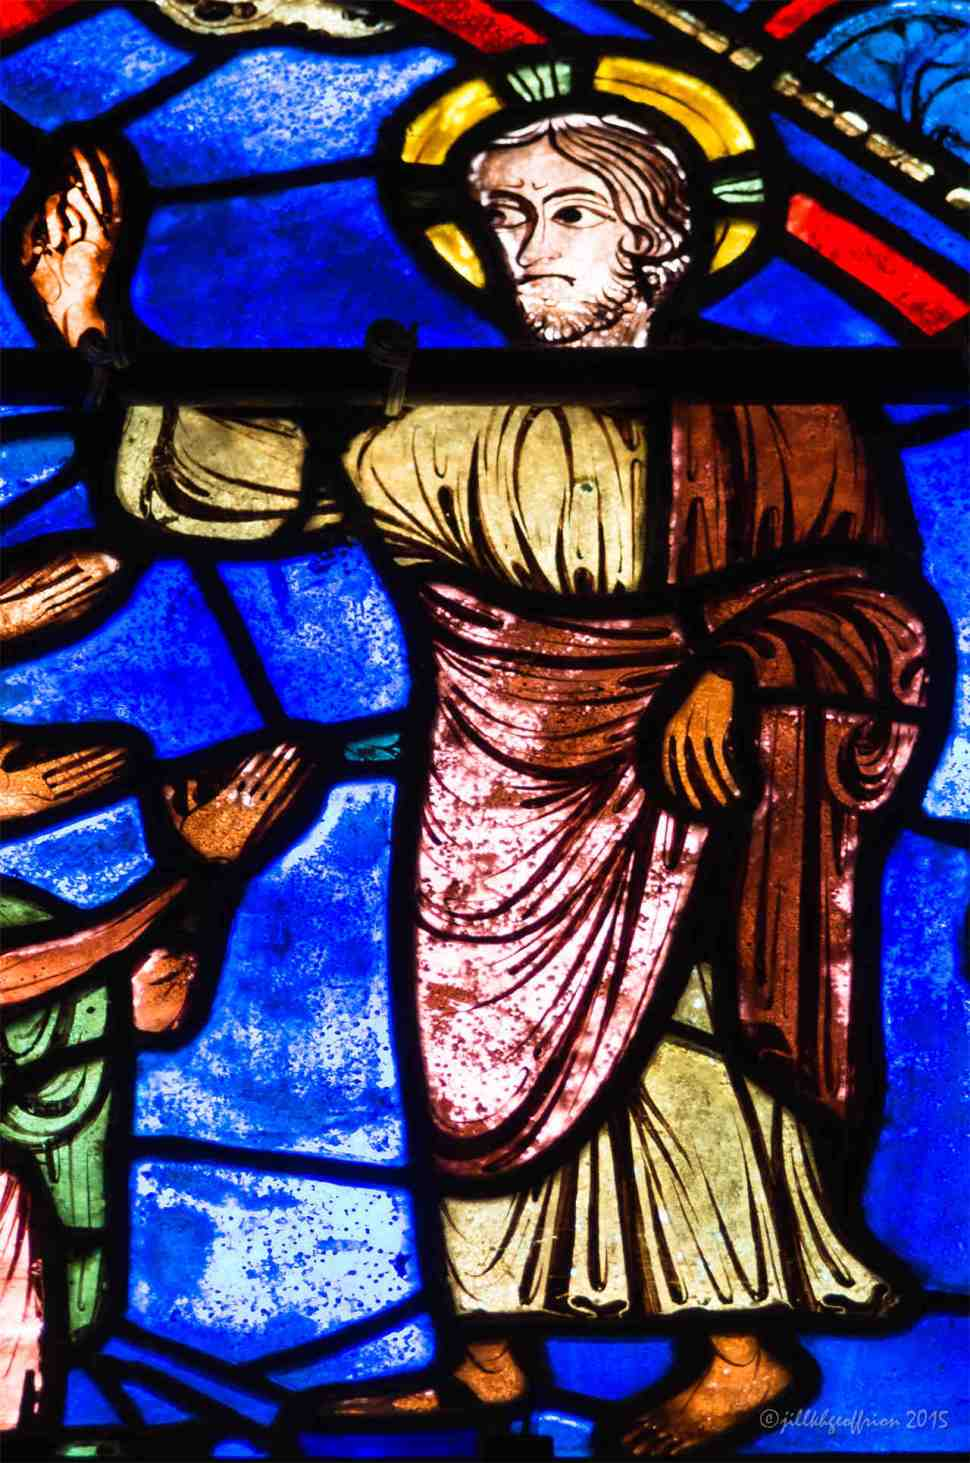 Jesus blessing in the Life of Mary window by Jill K H Geoffrion